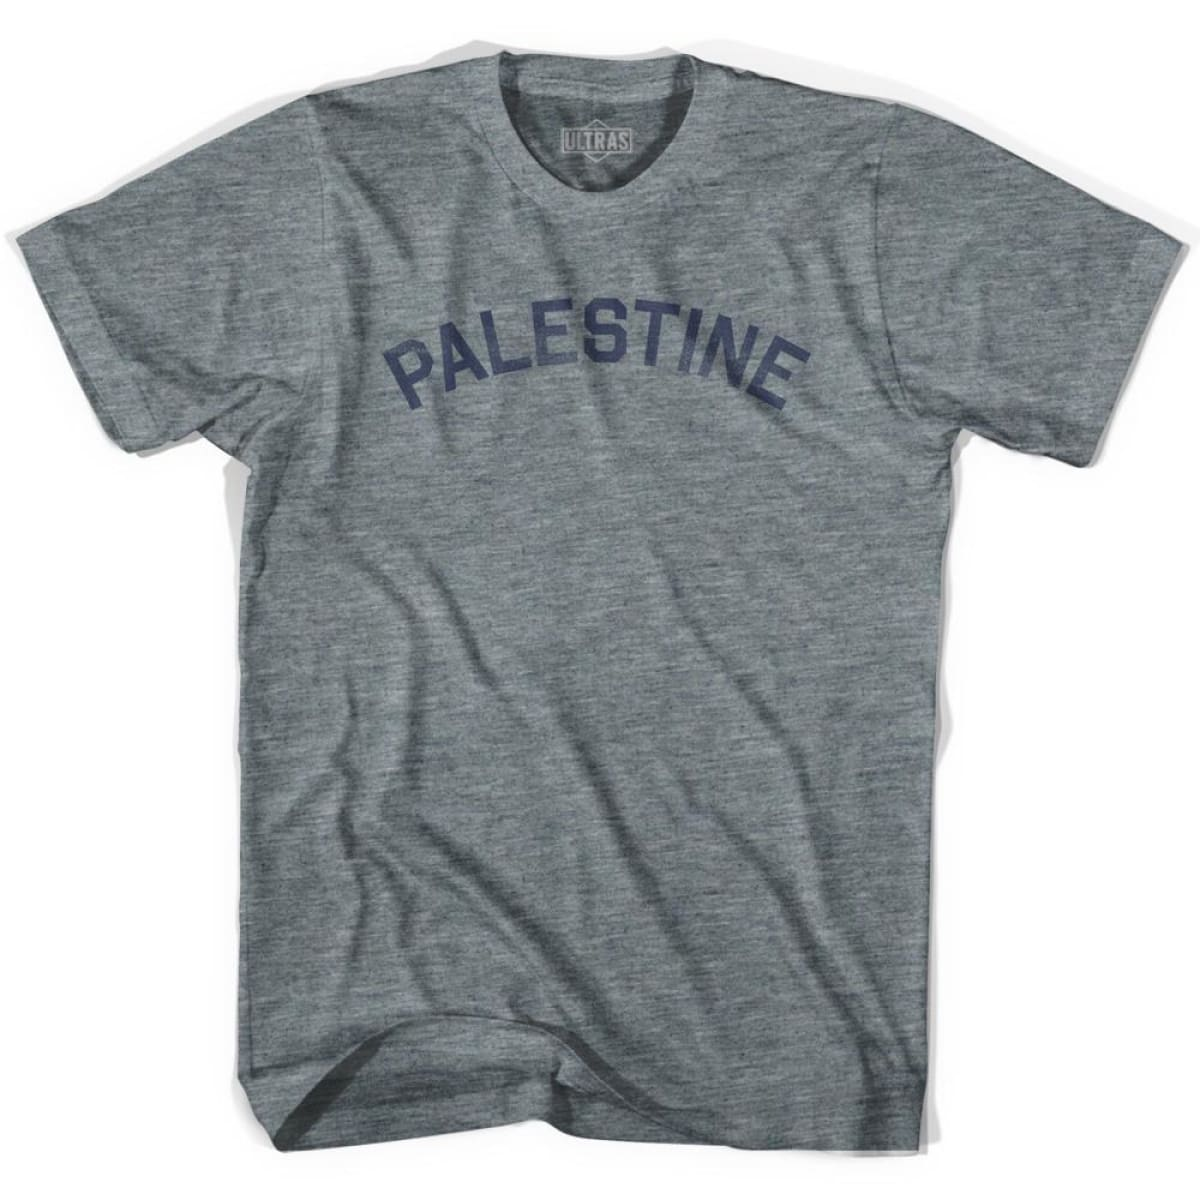 Palestine Vintage City Youth Tri-Blend T-shirt - Athletic Grey / Youth X-Small - Asian Vintage Country